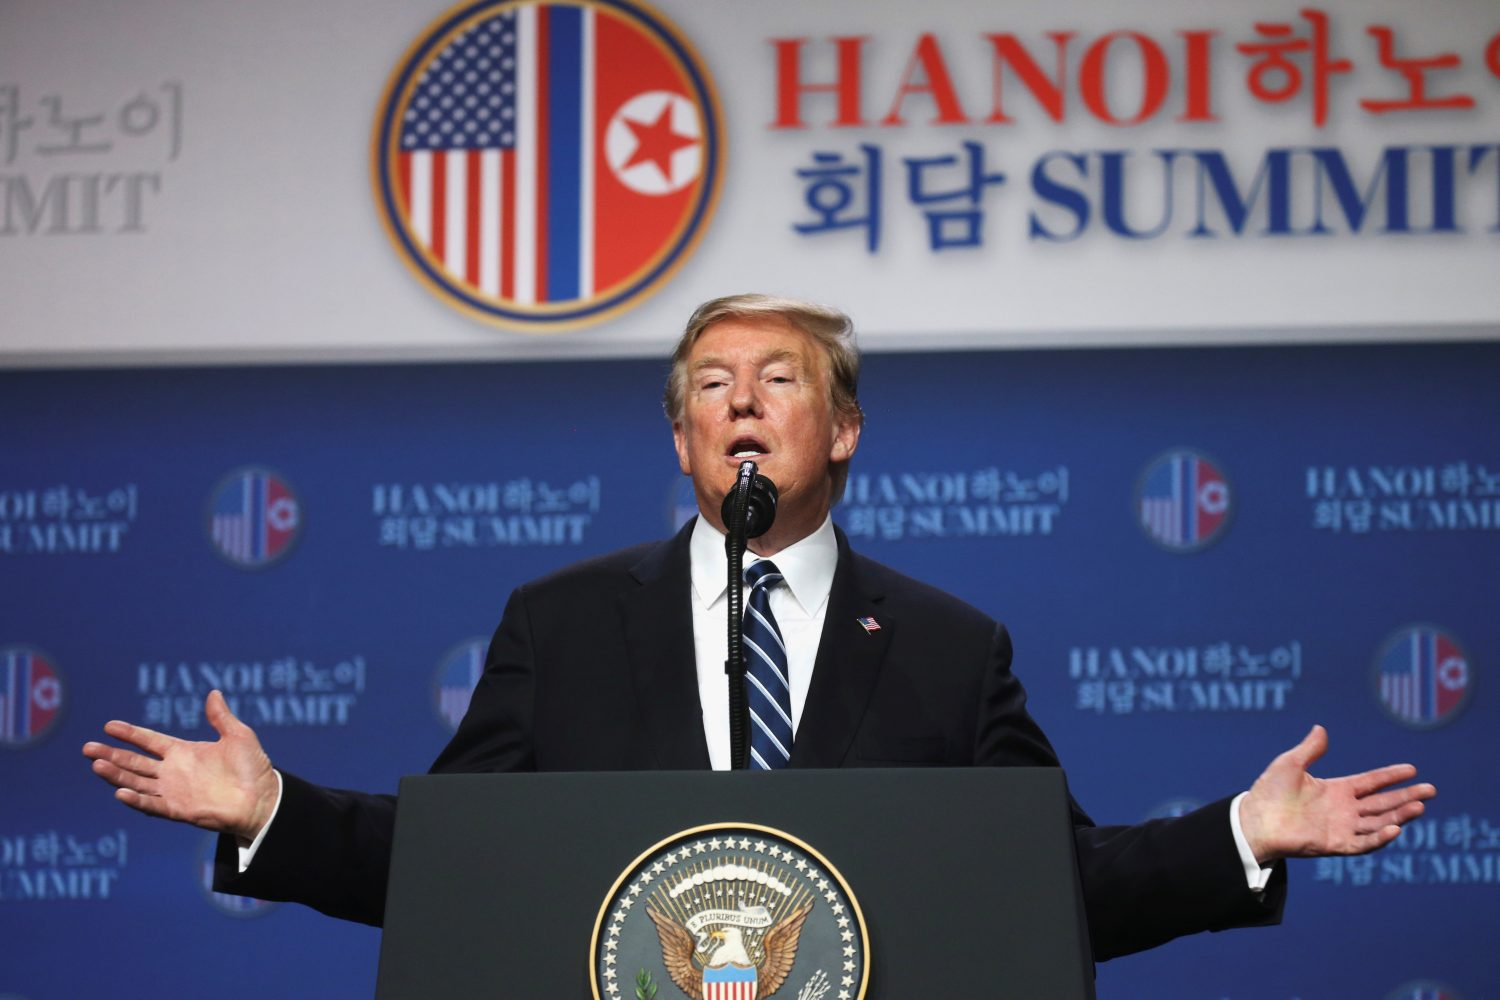 U.S. President Donald Trump holds a news conference after his summit with North Korean leader Kim Jong Un at the JW Marriott hotel in Hanoi, Vietnam, February 28, 2019. REUTERS/Leah Millis